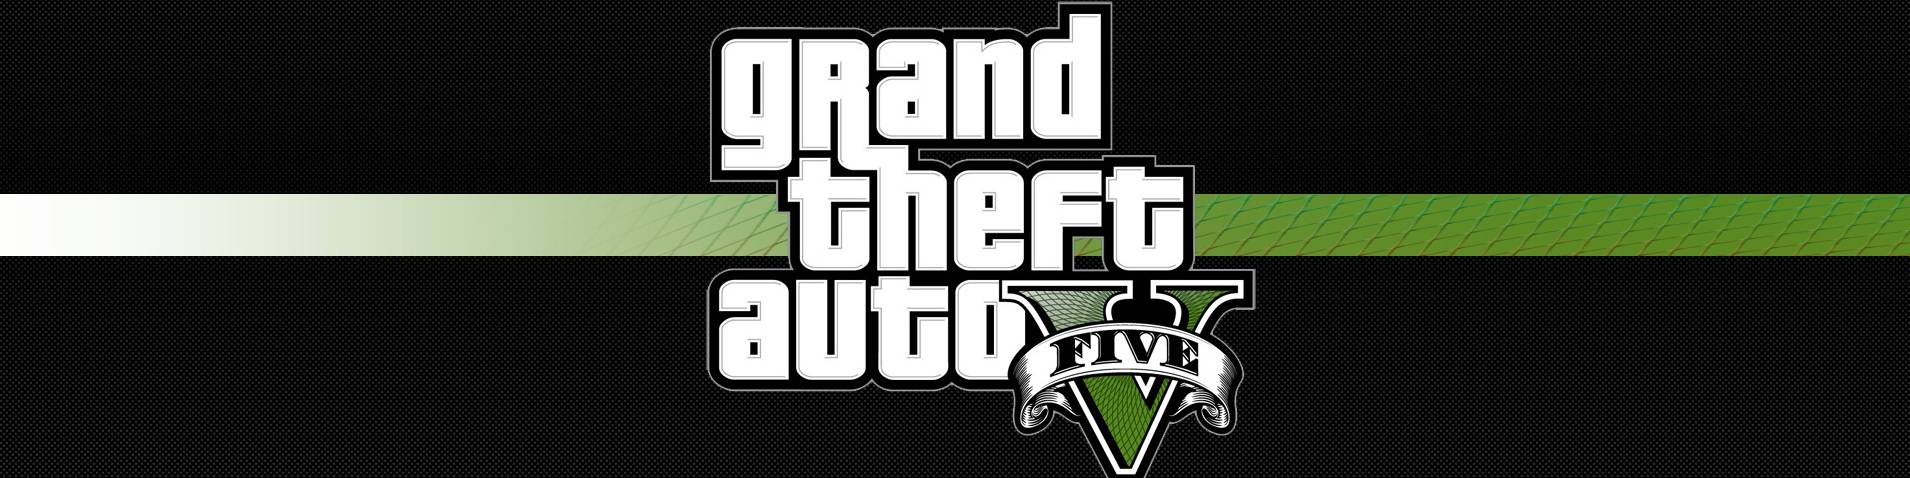 GTA-5-Logo-Wallpaper-HD.jpg - Grand Theft Auto 5